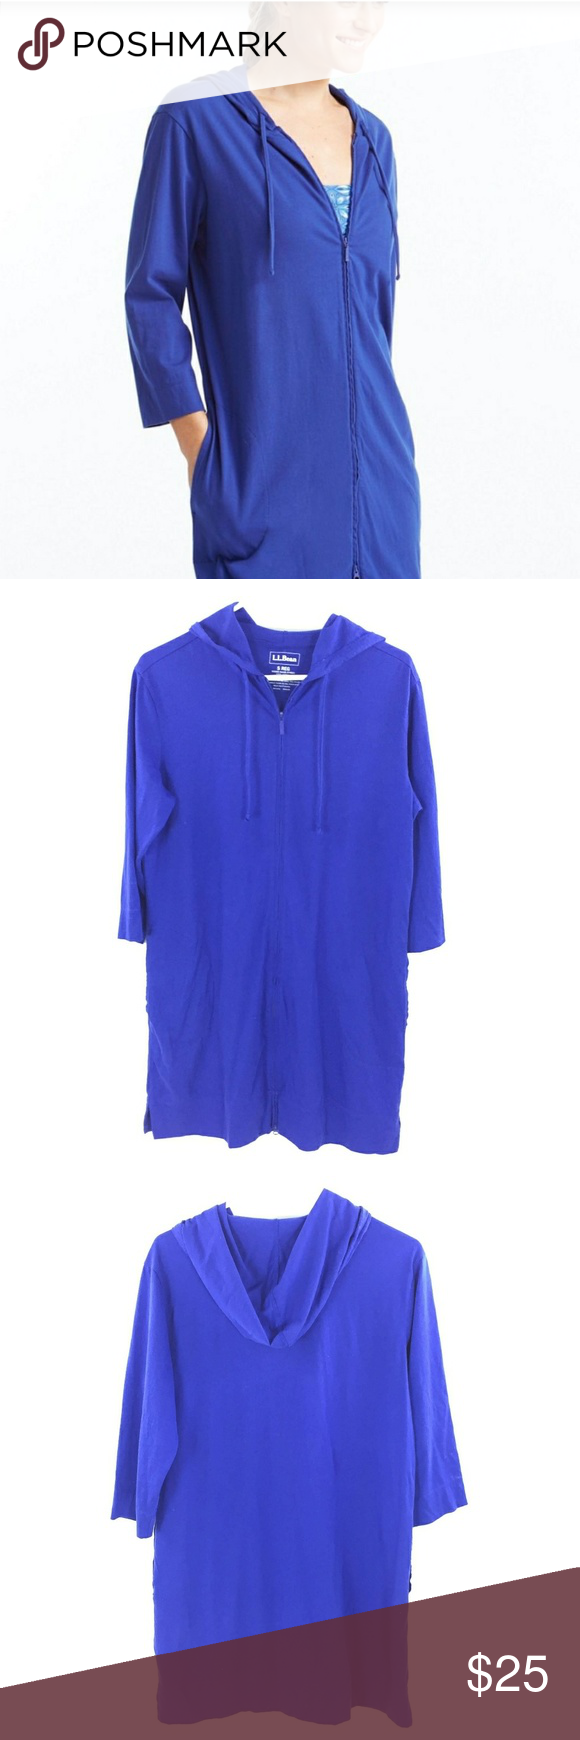 2df8fde824666 L. L. Bean full zip hooded swim cover up S L. L. Bean full zip hooded swim  suit cover up. Royal blue (zipper goes all the way to bottom) Gently worn  no ...